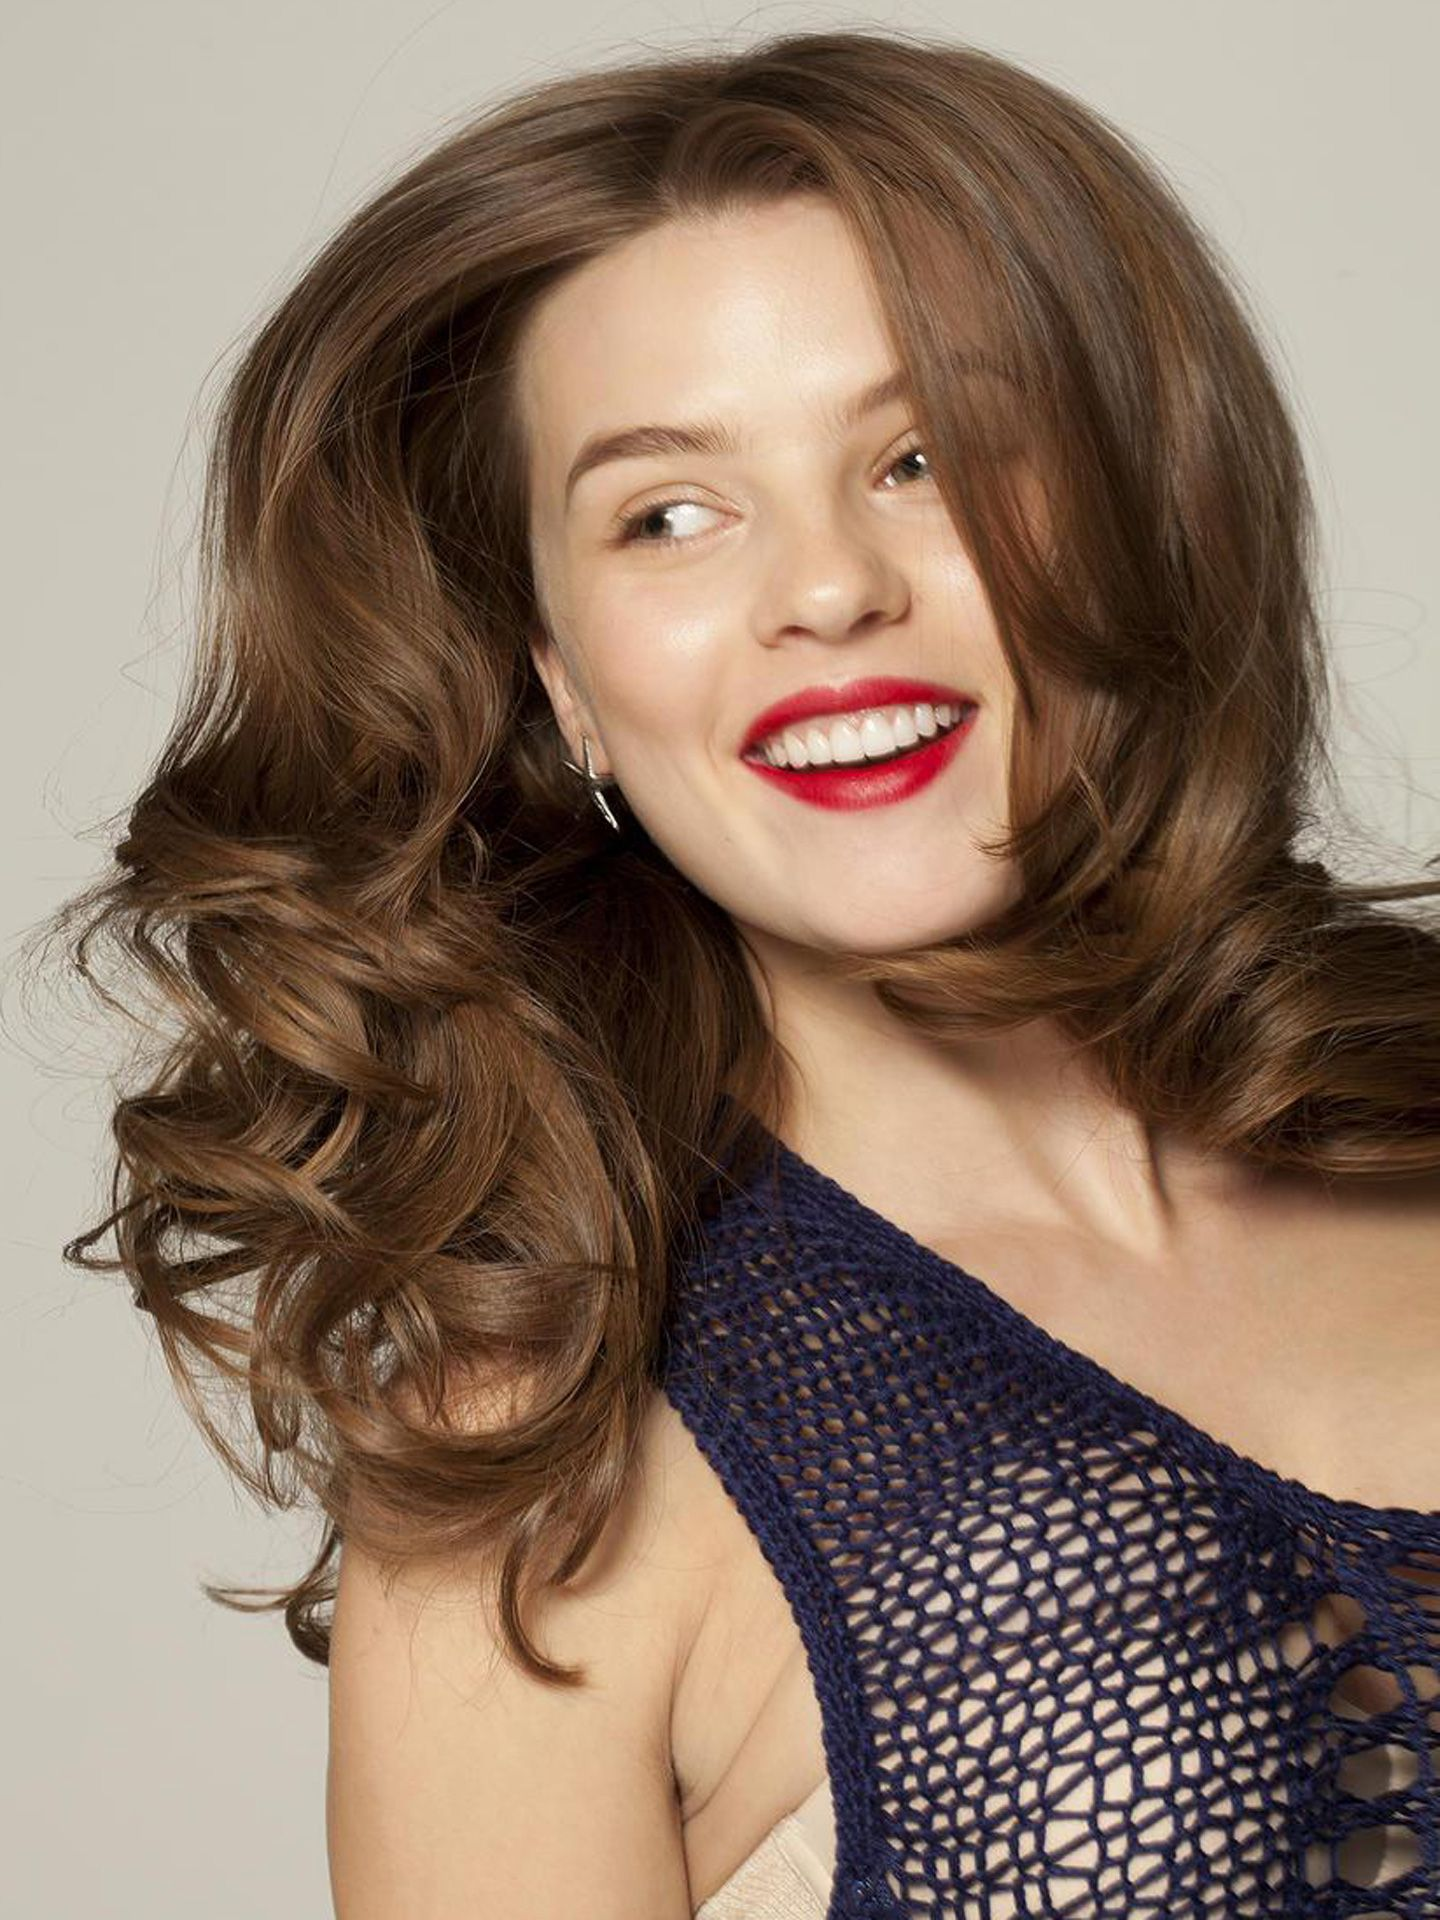 5 Cute Flat Iron Hairstyle Ideas - How To Style Hair With A ...